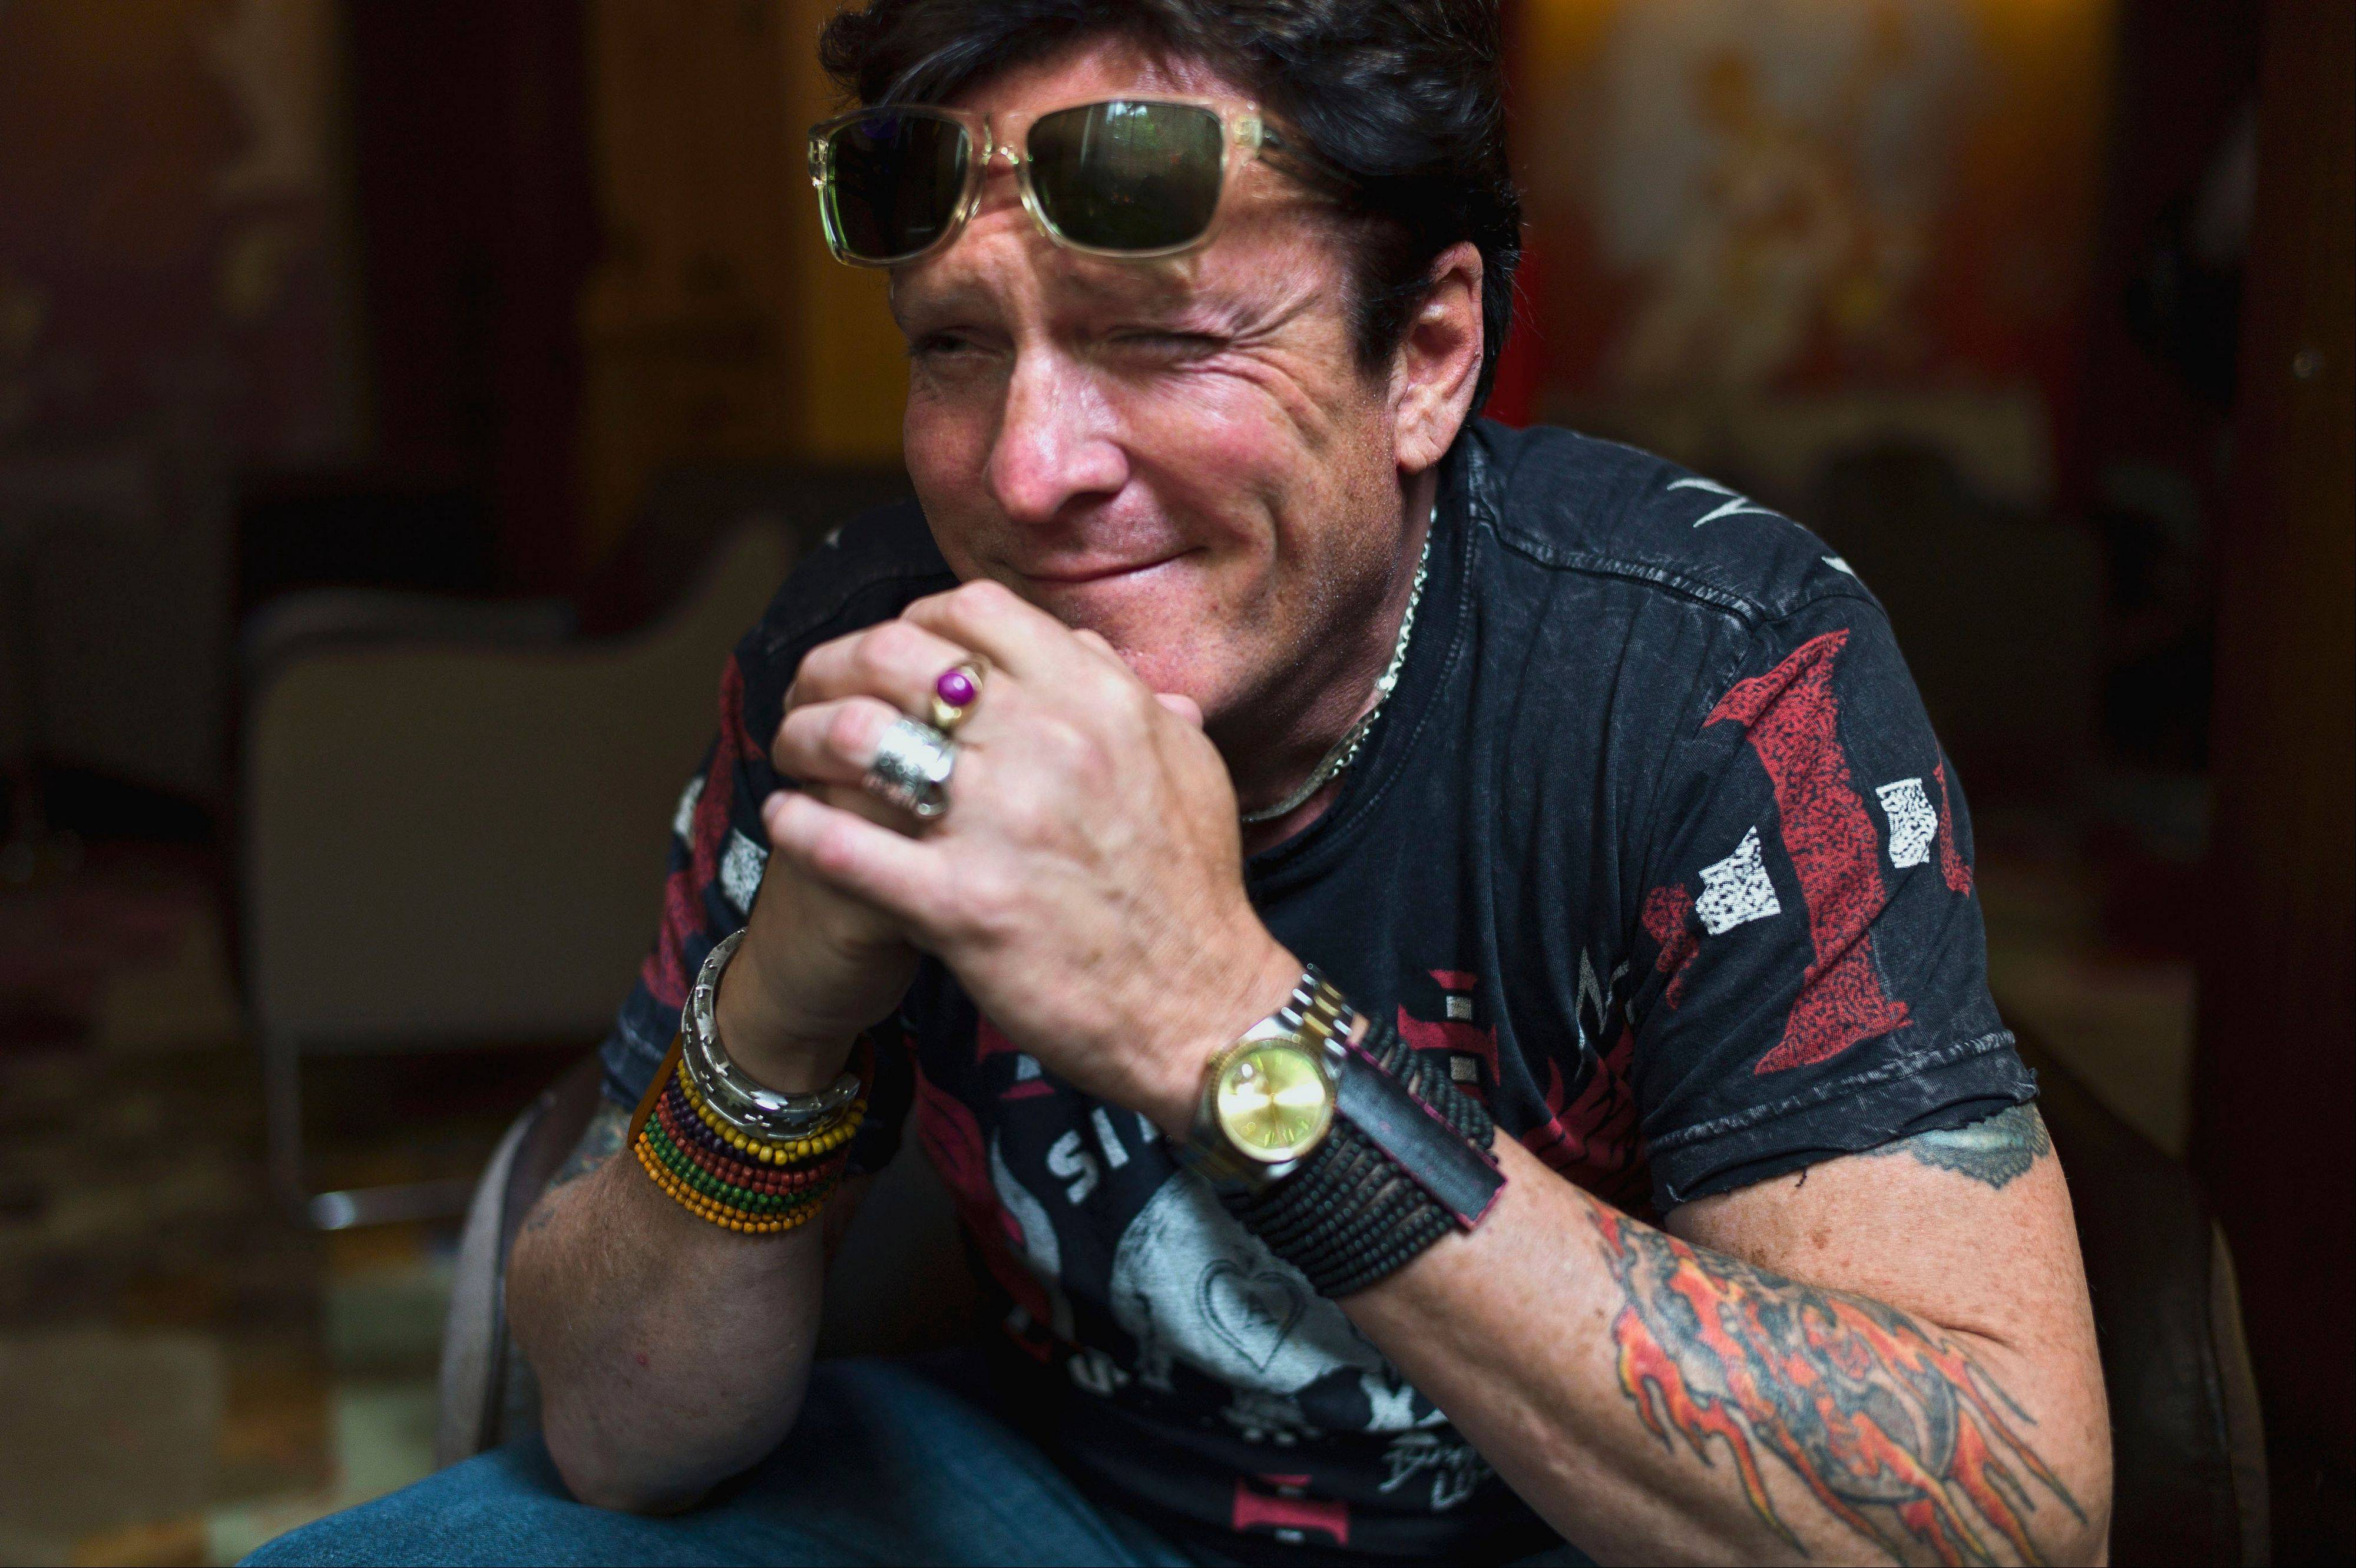 Michael Madsen was released from a hospital after being arrested for investigation of drunken driving on Pacific Coast Highway in Malibu, his attorney said Thursday.